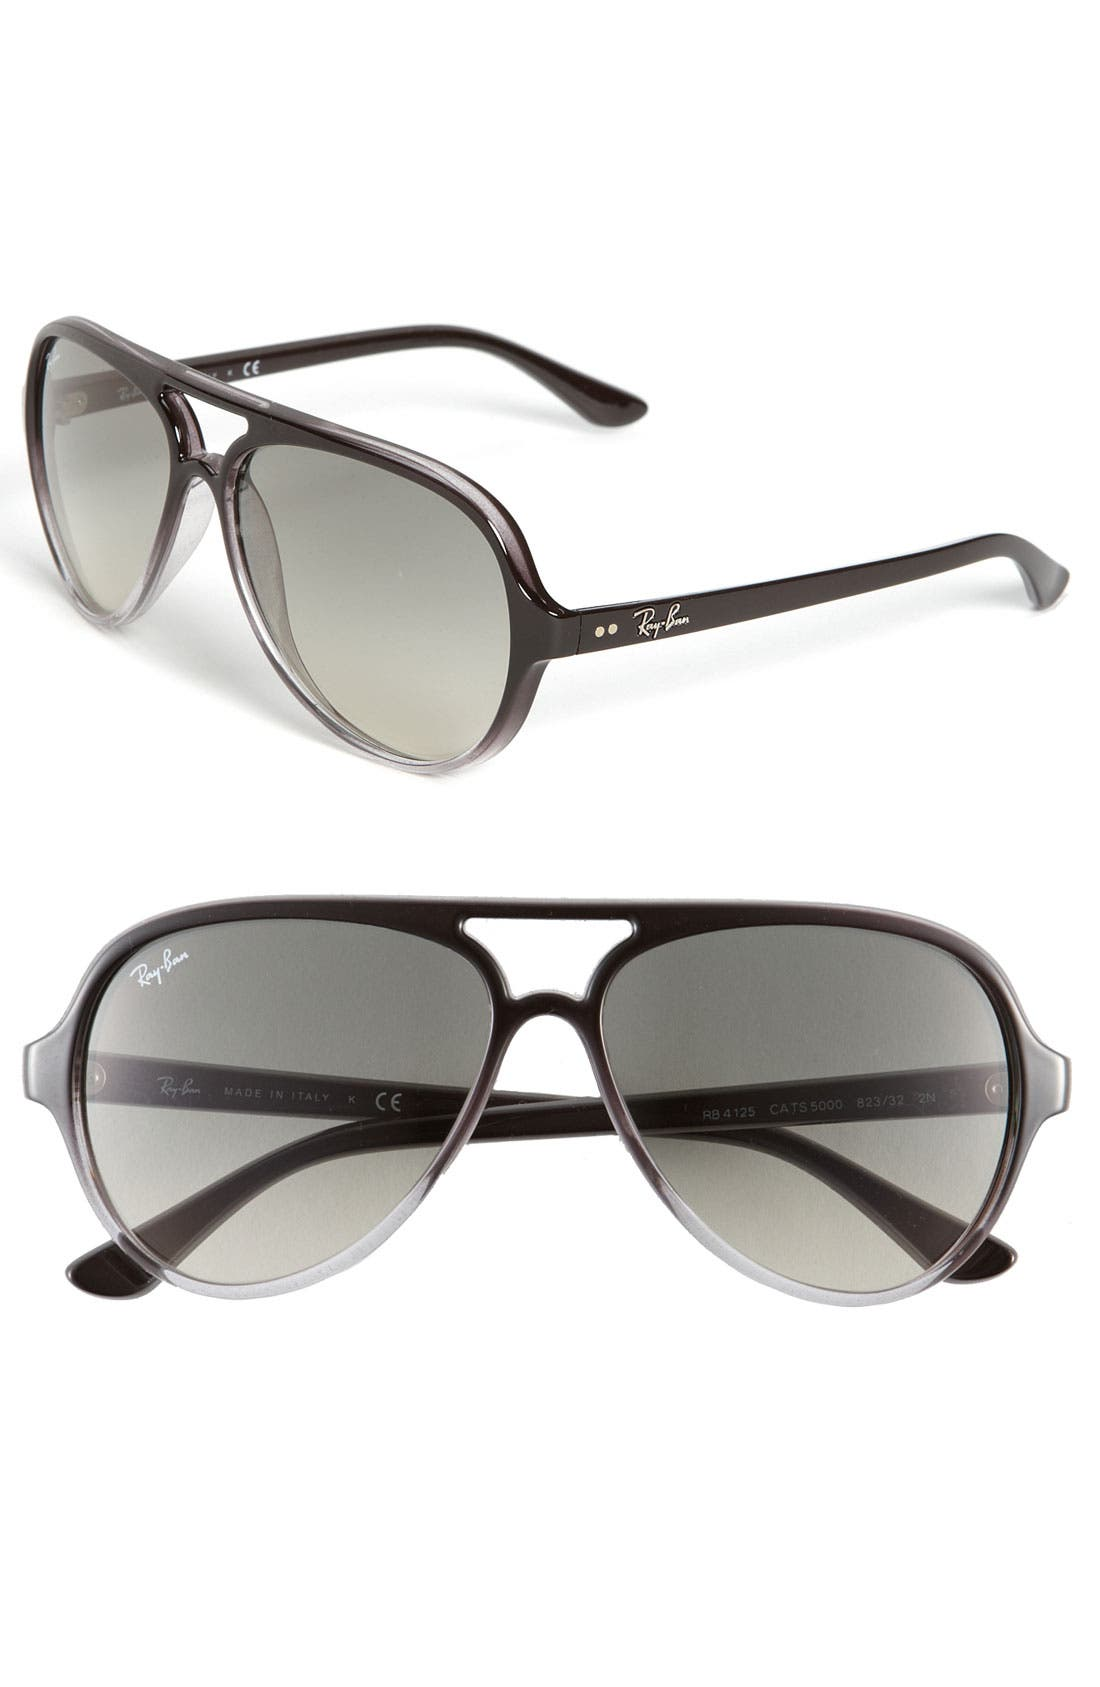 Main Image - Ray-Ban 59mm Resin Aviator Sunglasses